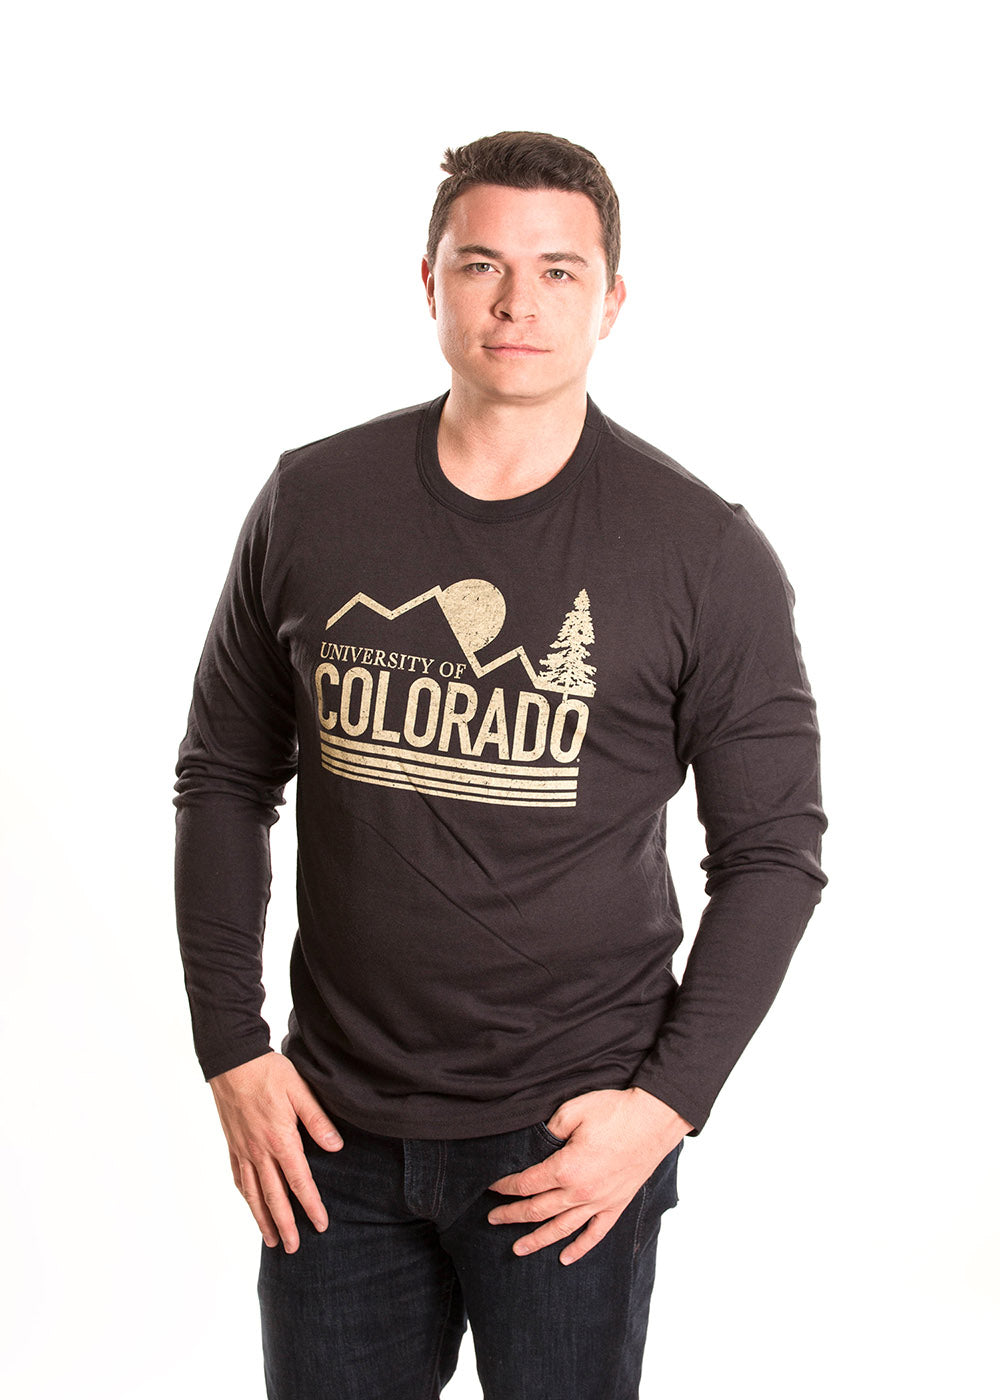 UNIVERSITY OF COLORADO Buffaloes Men's Long Sleeve Tee